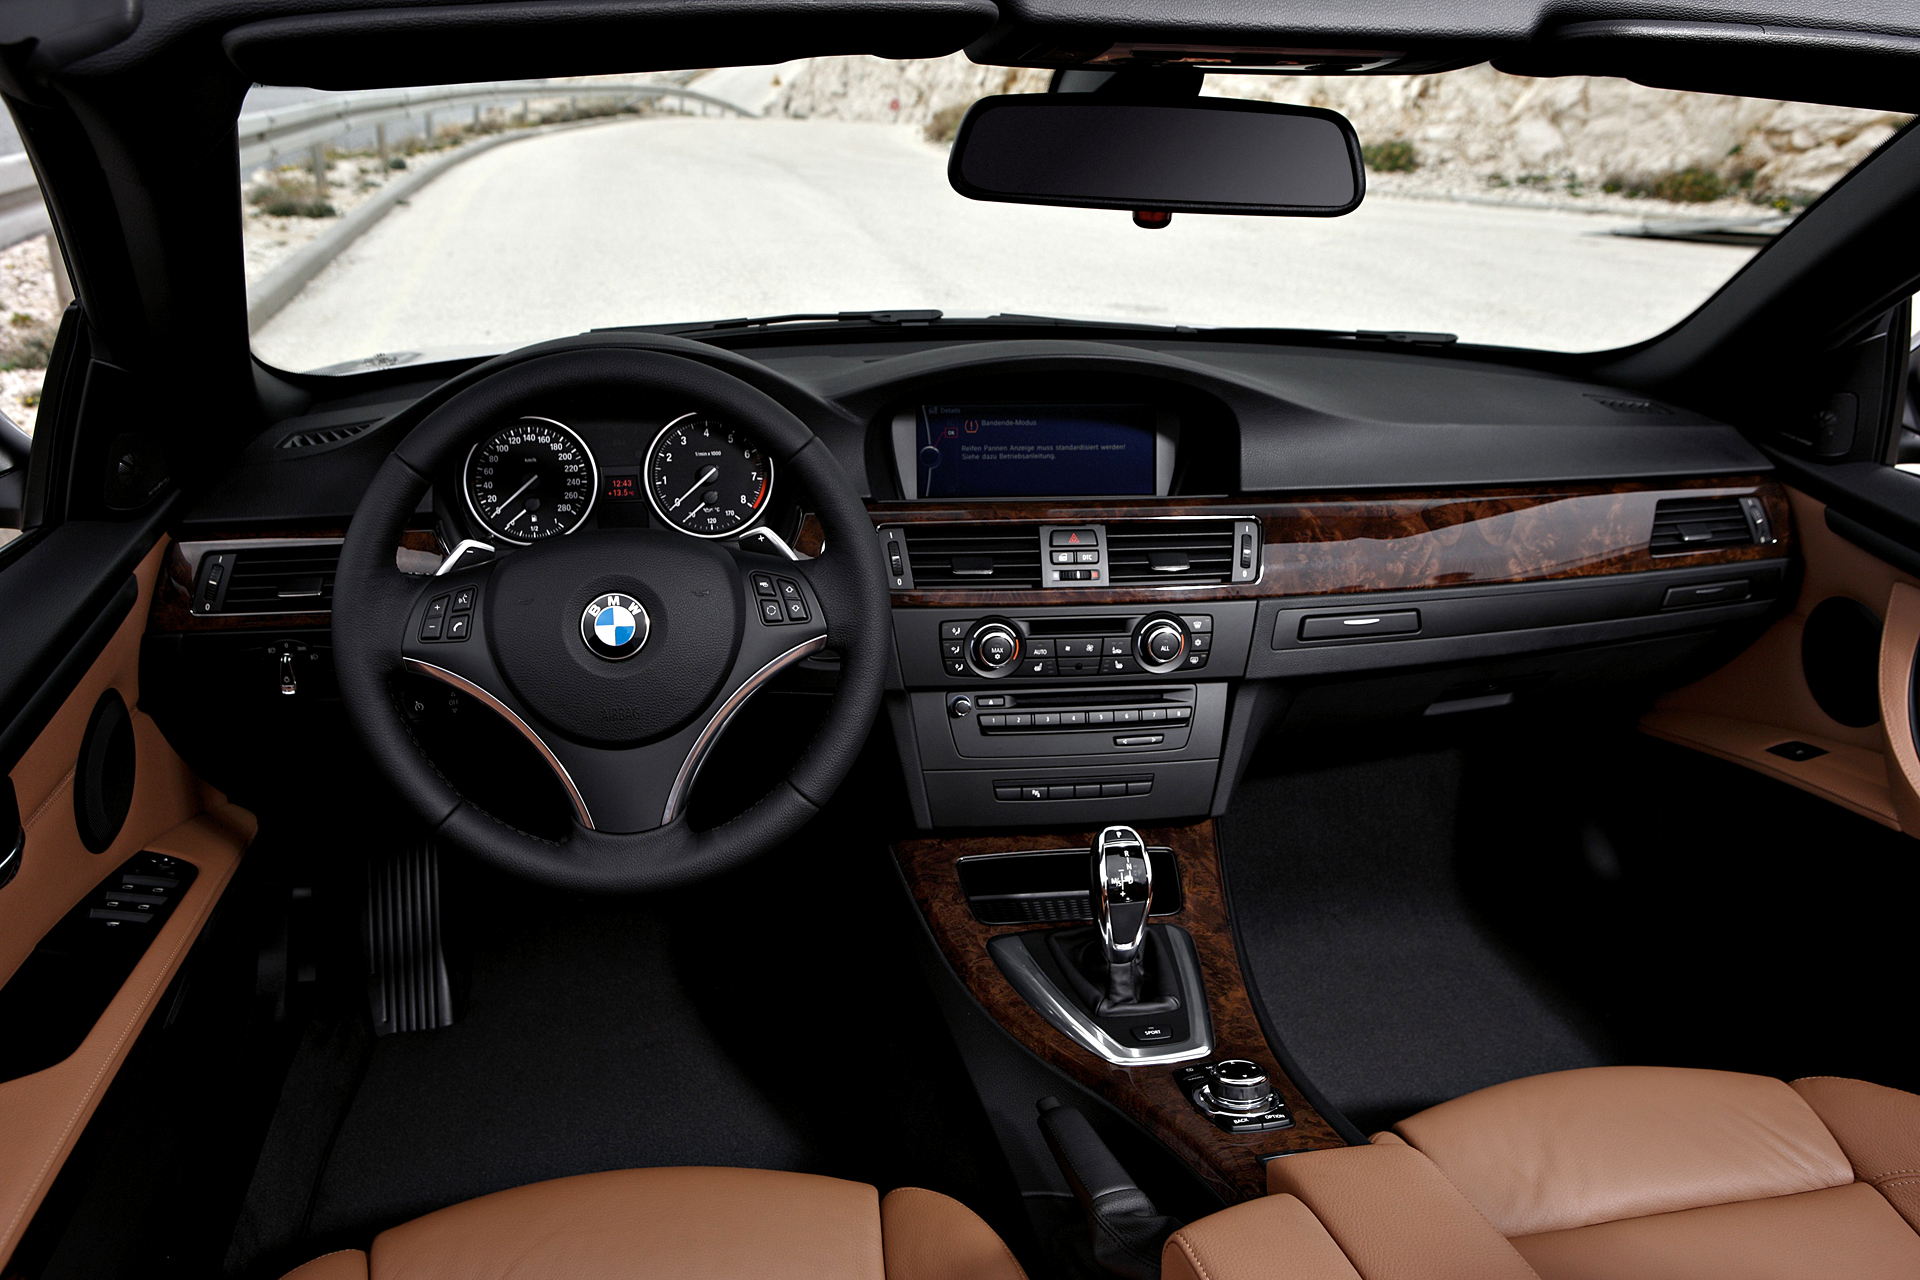 2011 BMW 3 series Coupe and Convertible Revealed - Page 2